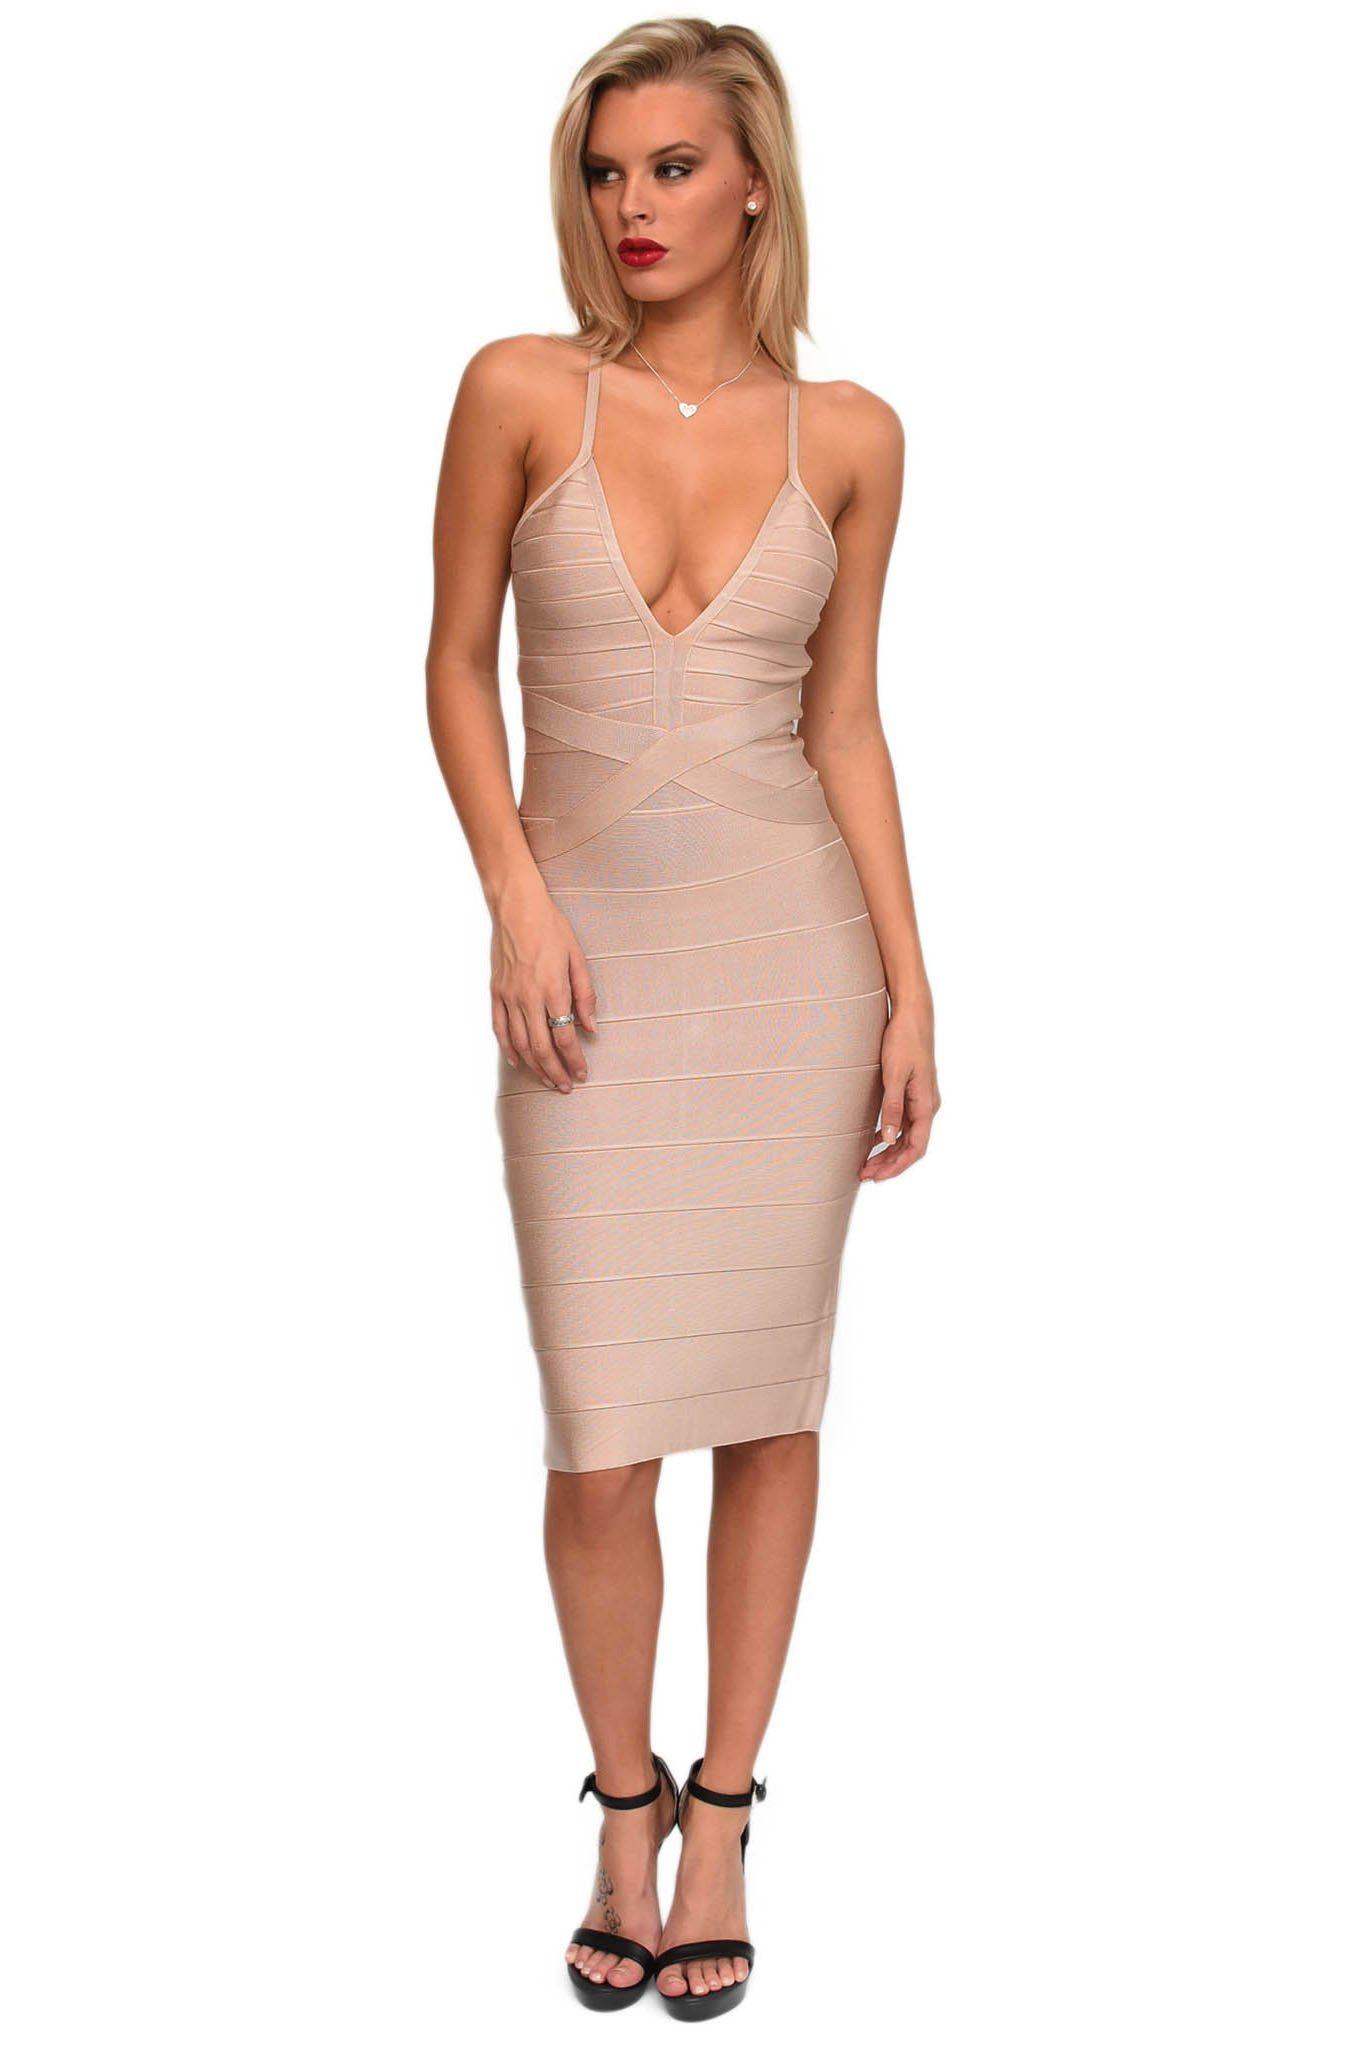 Nude coloured knee-length stretchy bandage dress with back crisscross thin straps and V plunging neckline